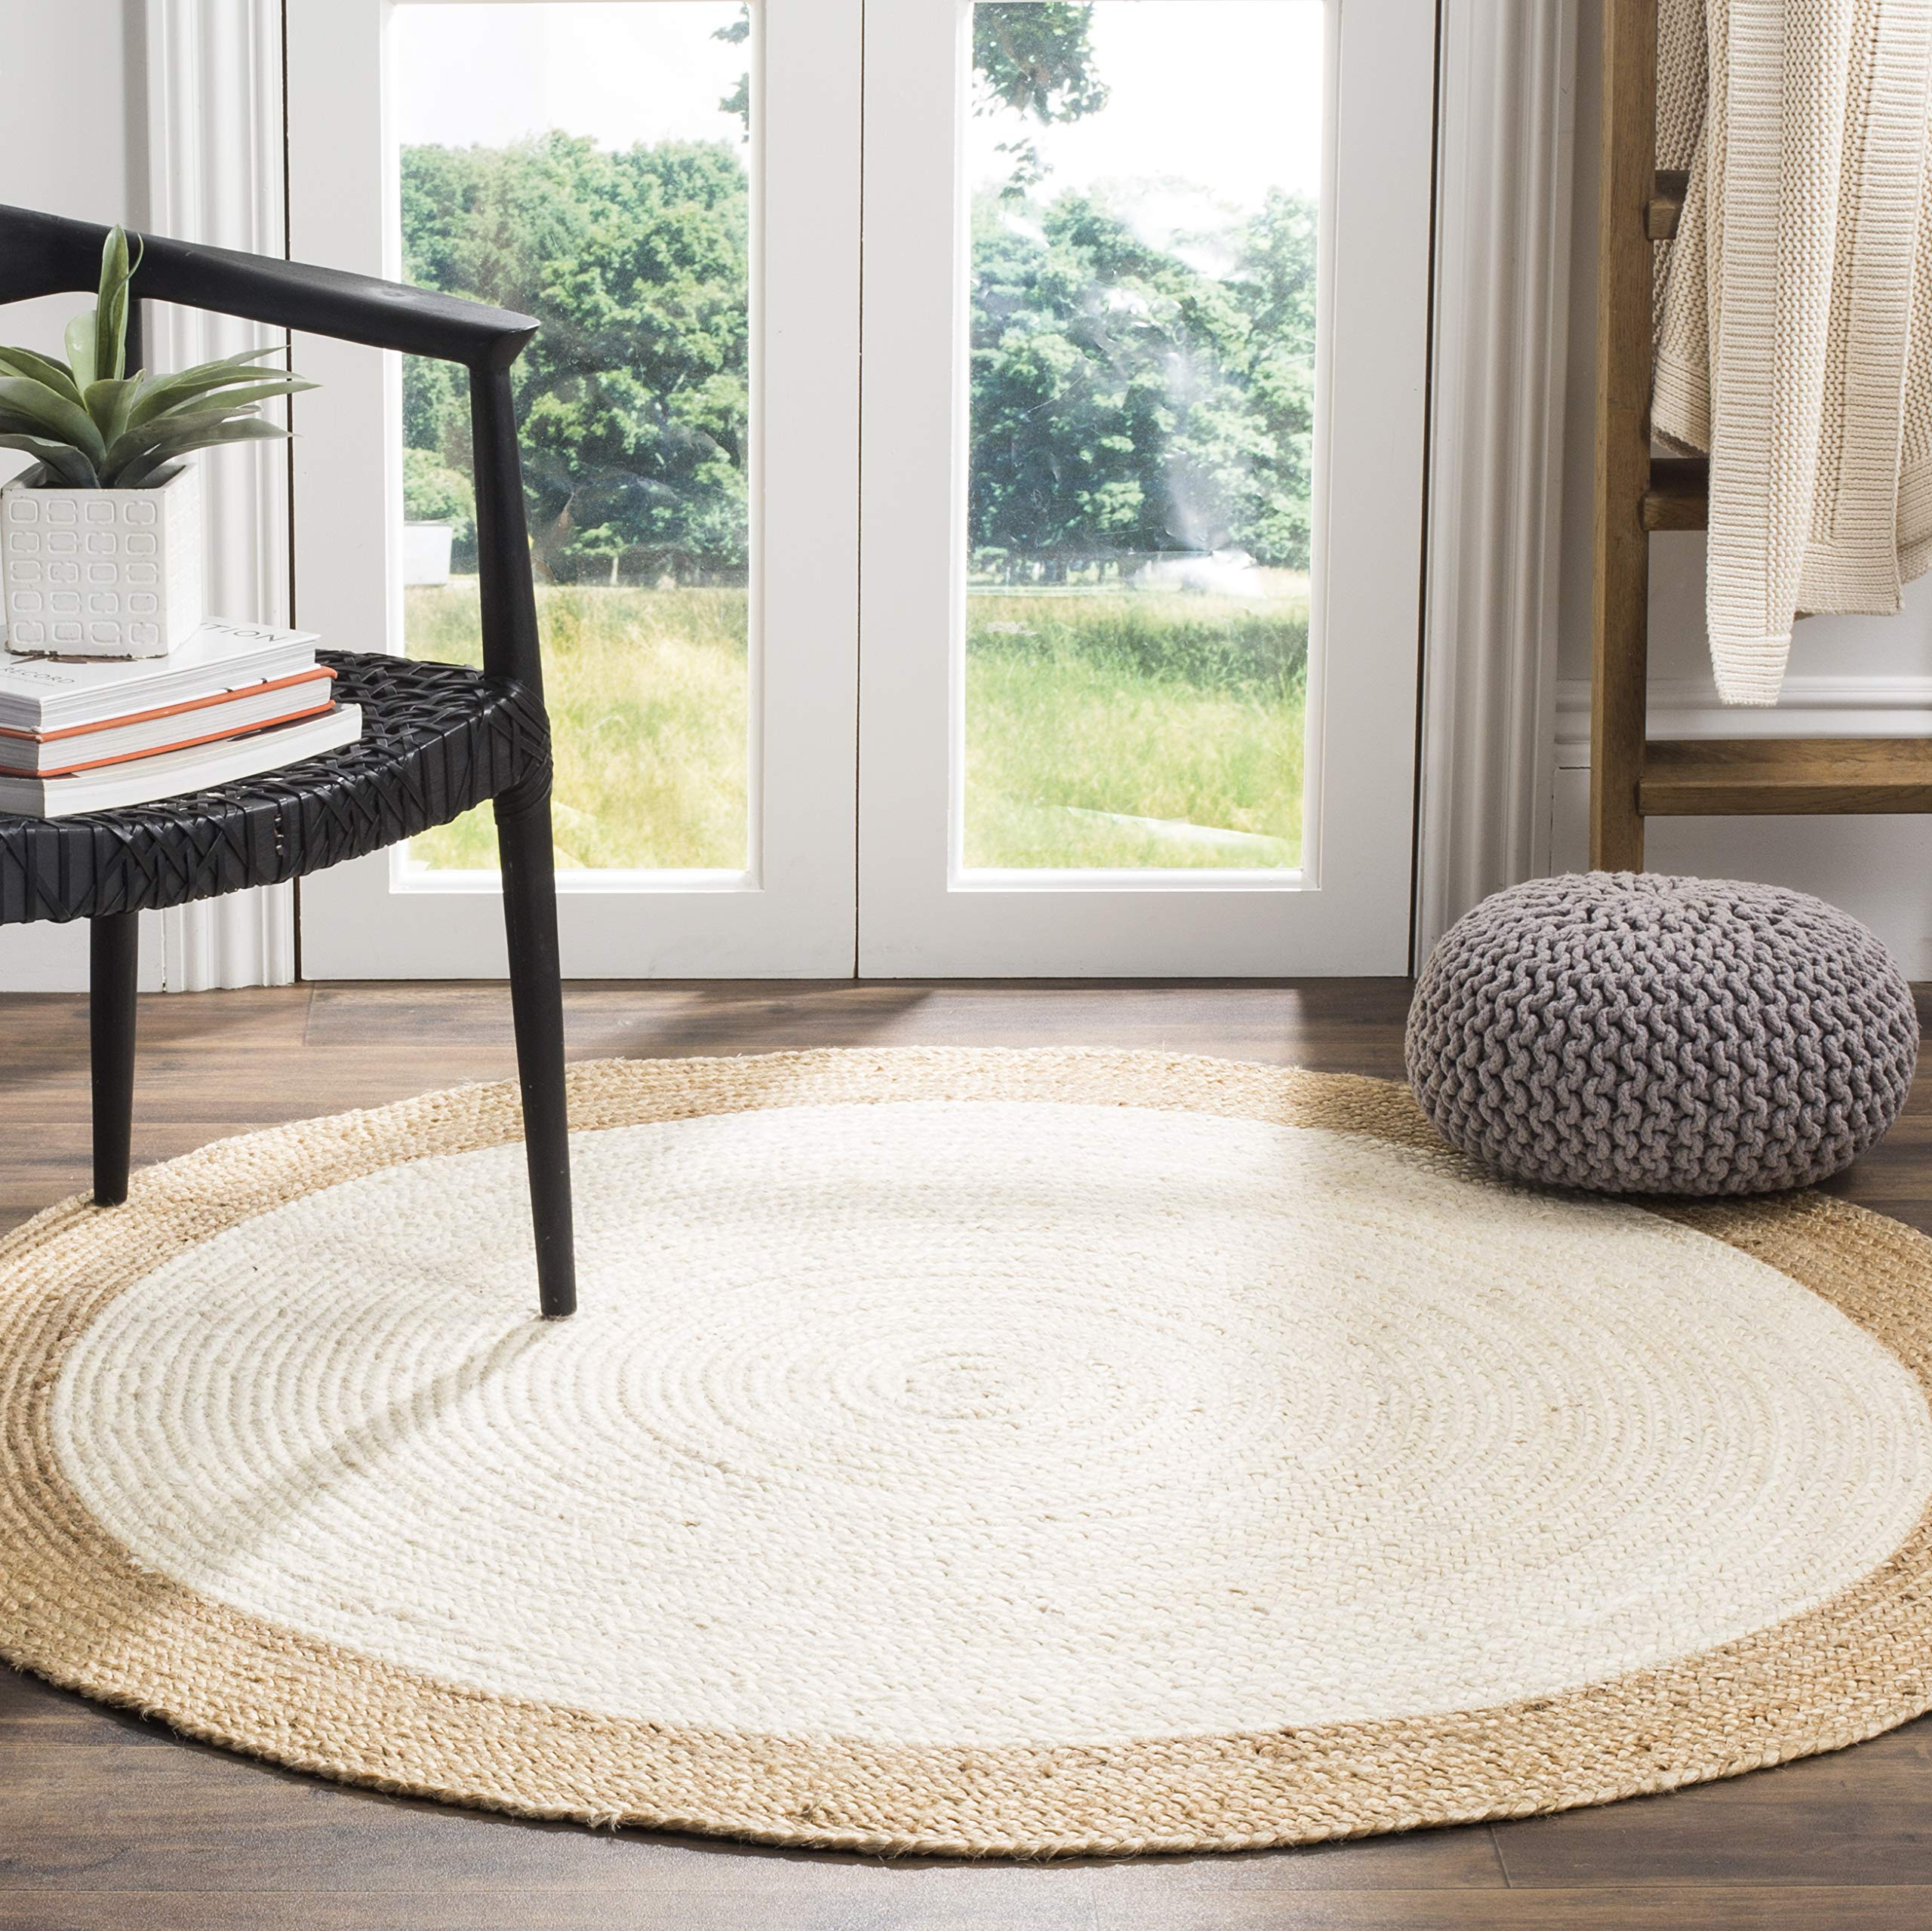 Safavieh Natural Fiber Collection NF801M Hand-Woven Ivory and Natural Jute Round Area Rug (8' in Diameter)